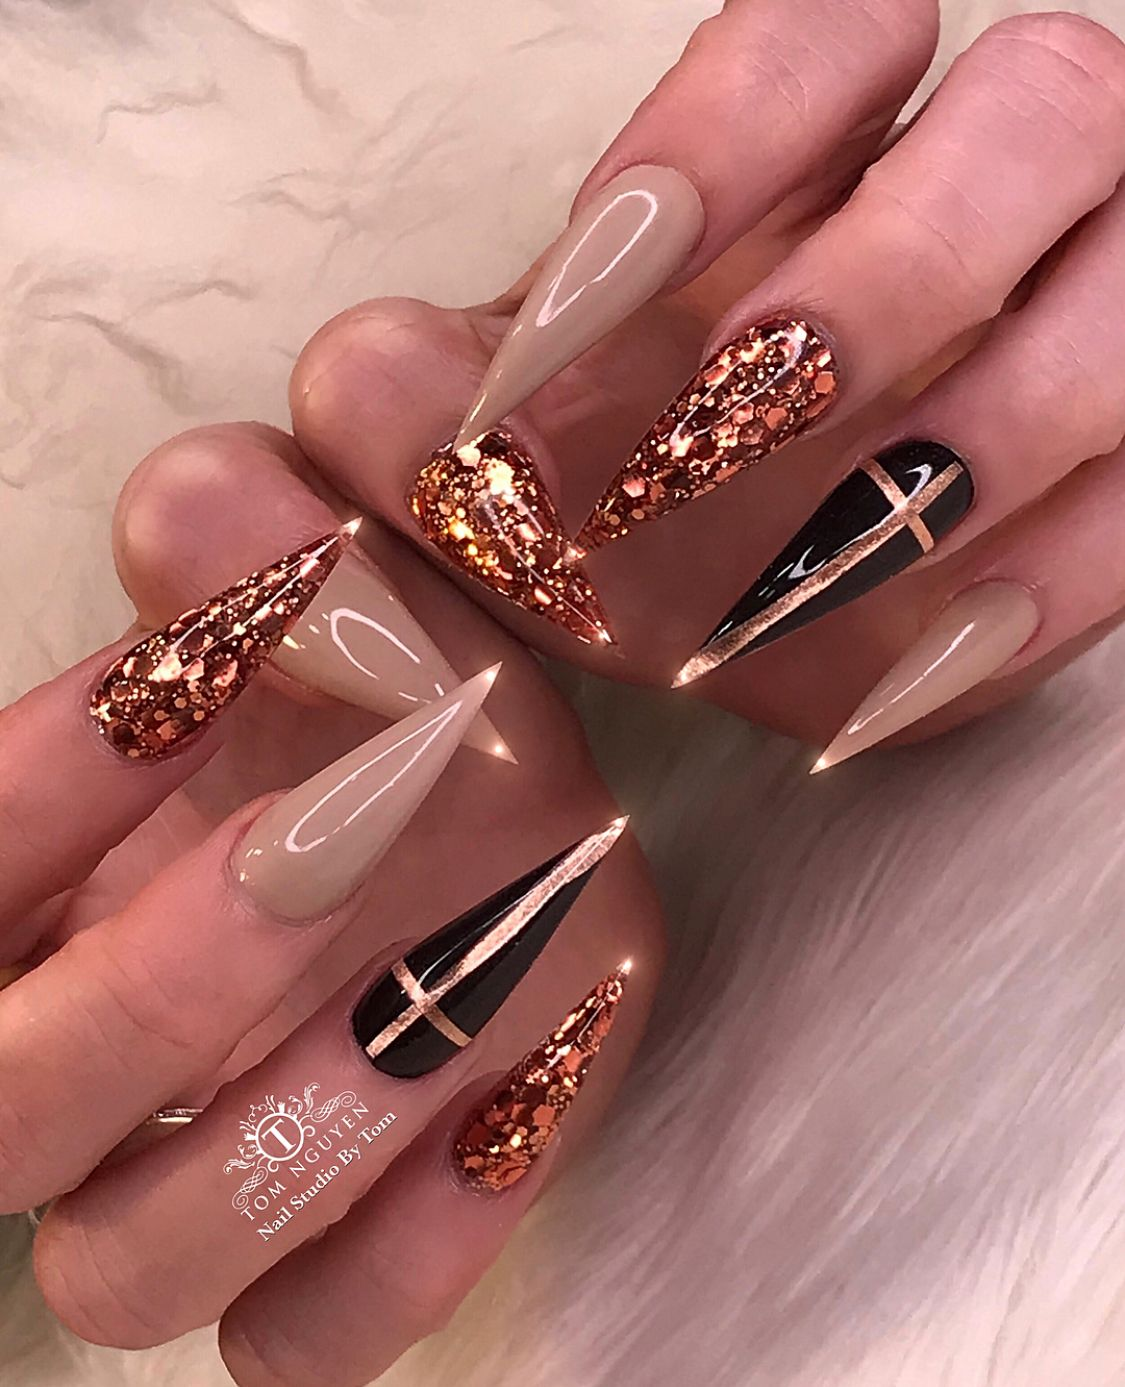 b56ed218950 Bling bling nails. Stiletto acrylic manicure with taupe, gold glitter and  black with gold